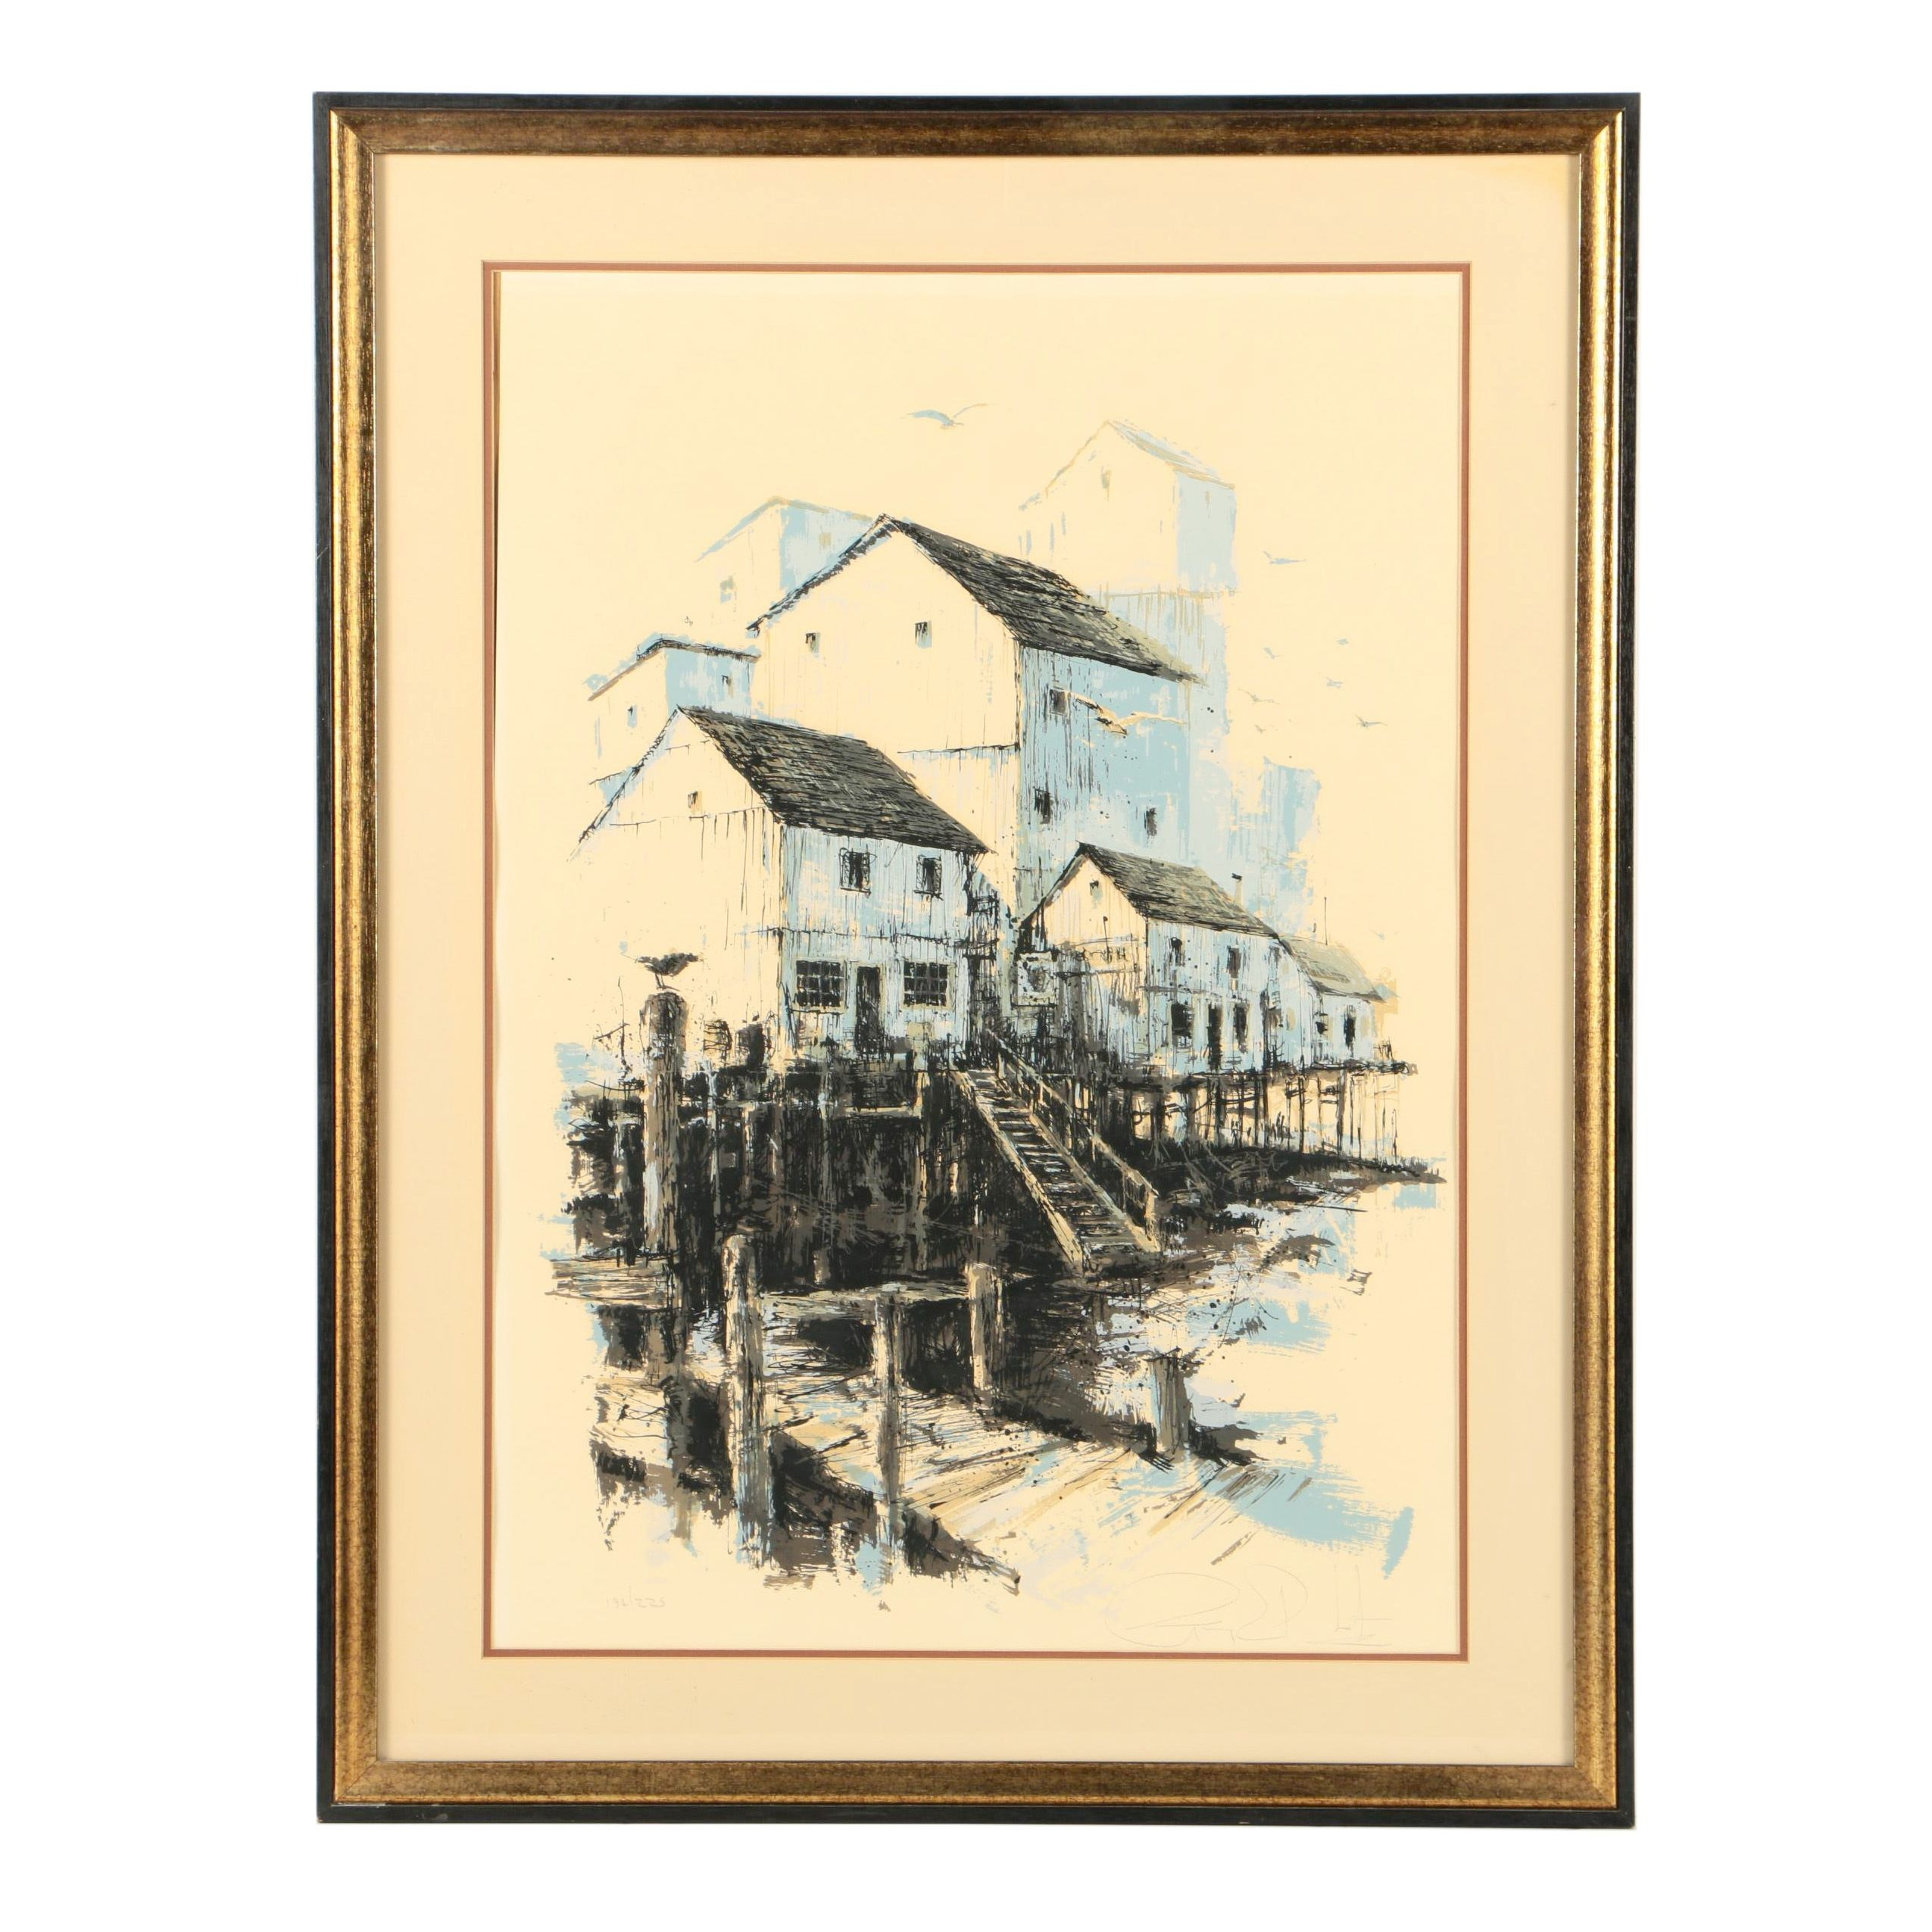 Limited Edition Serigraph on Paper of a Harbor Scene